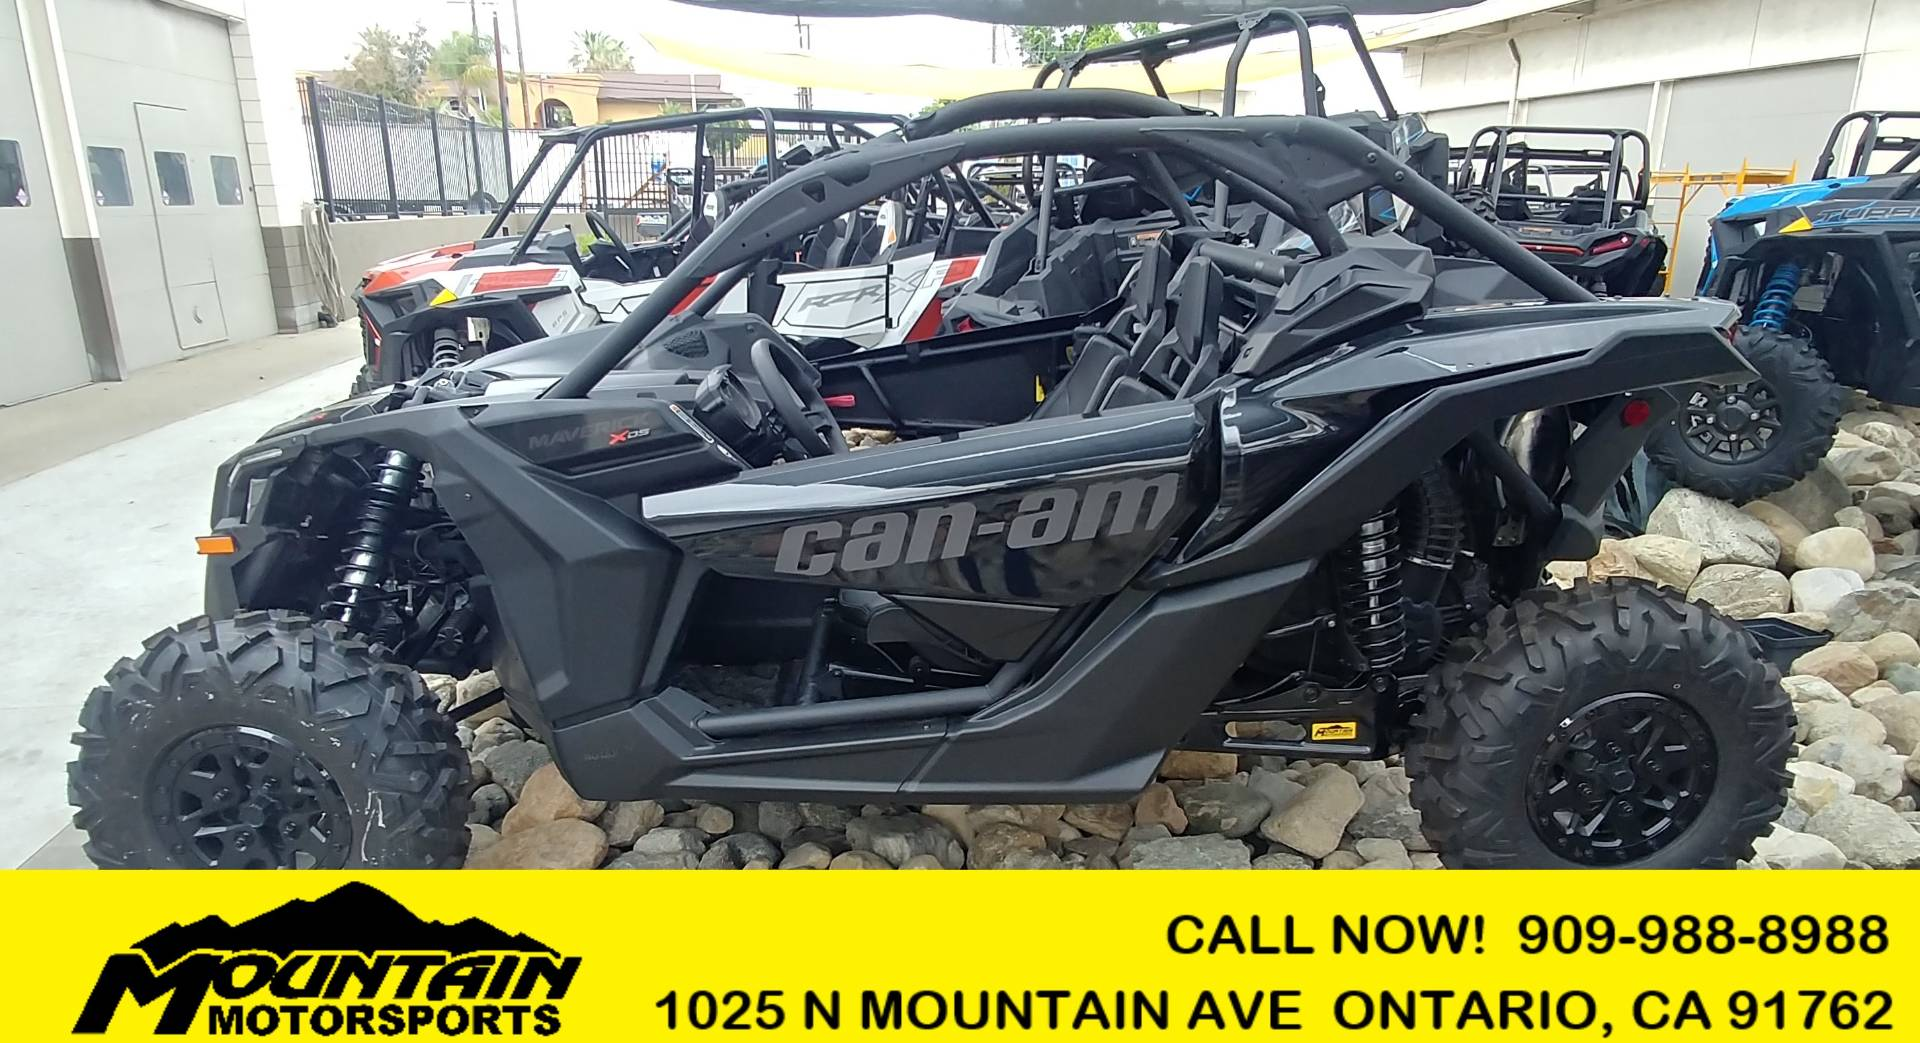 2019 Can-Am Maverick X3 X ds Turbo R for sale 42178